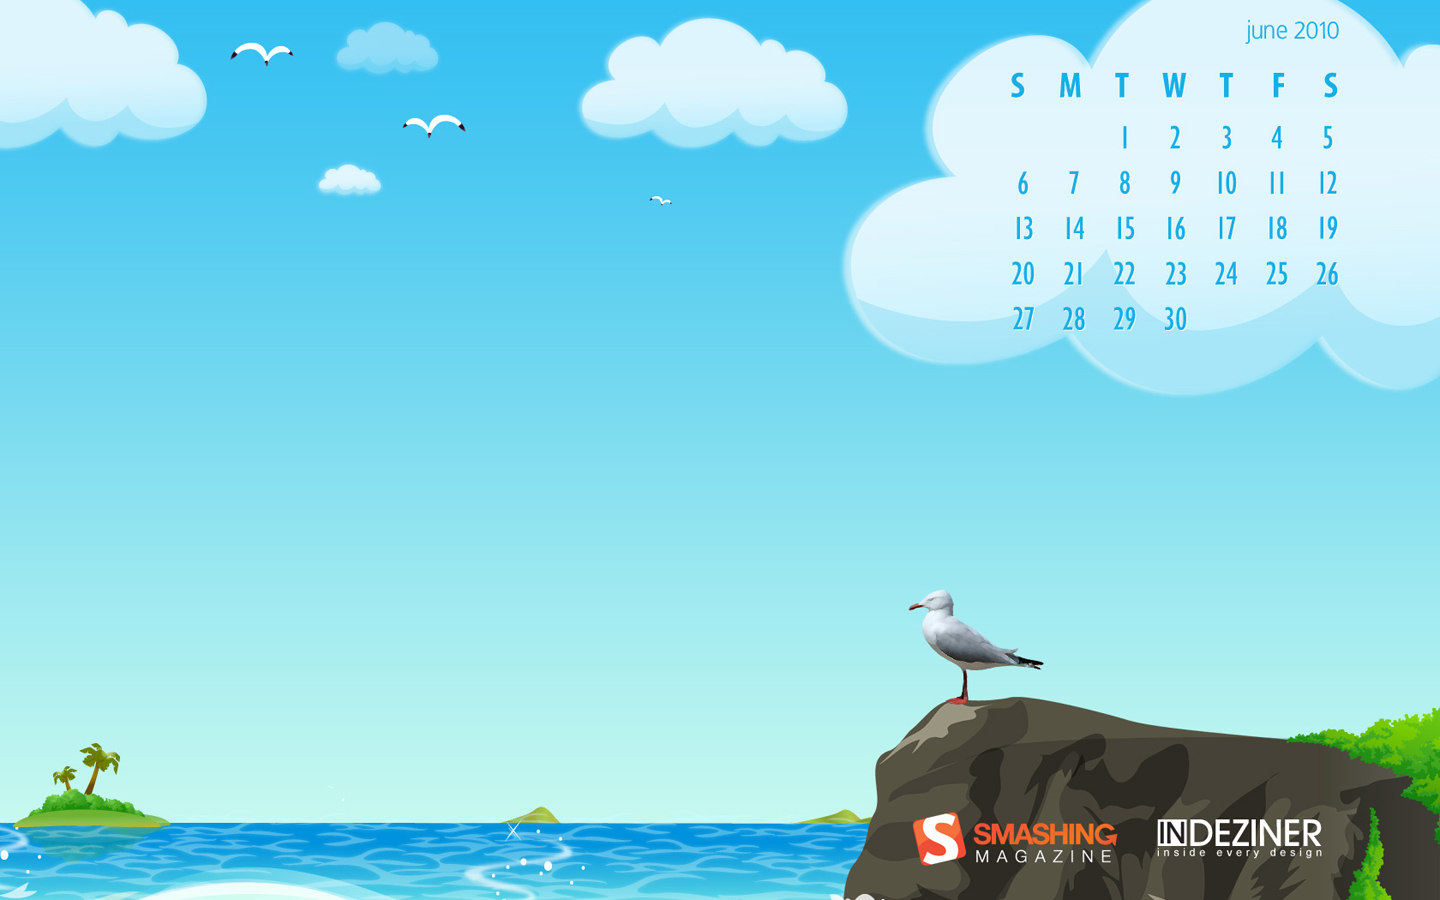 Calendar Wallpaper of the month 7140